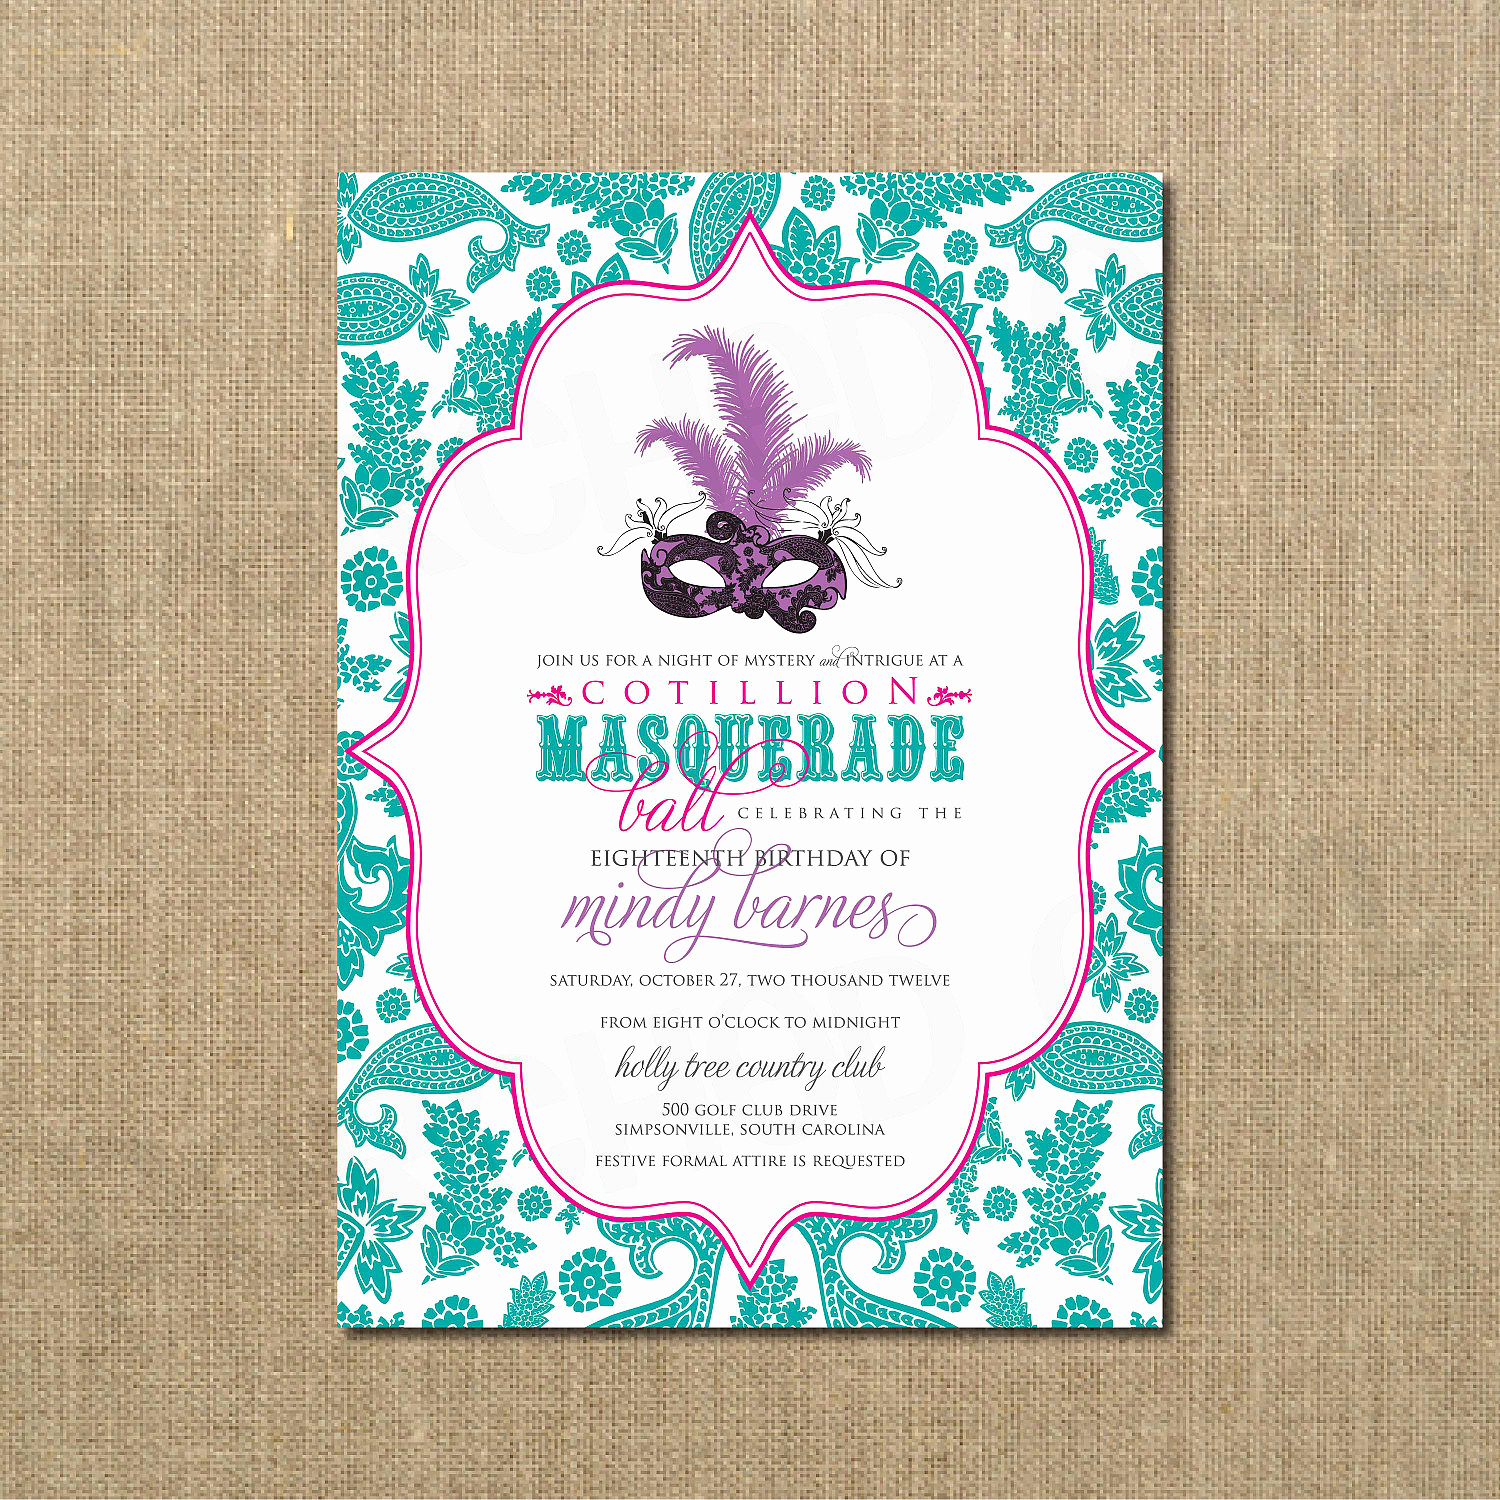 Masquerade Ball Invitation Wording Best Of Cotillion Masquerade Ball Birthday Invitation Masquerade